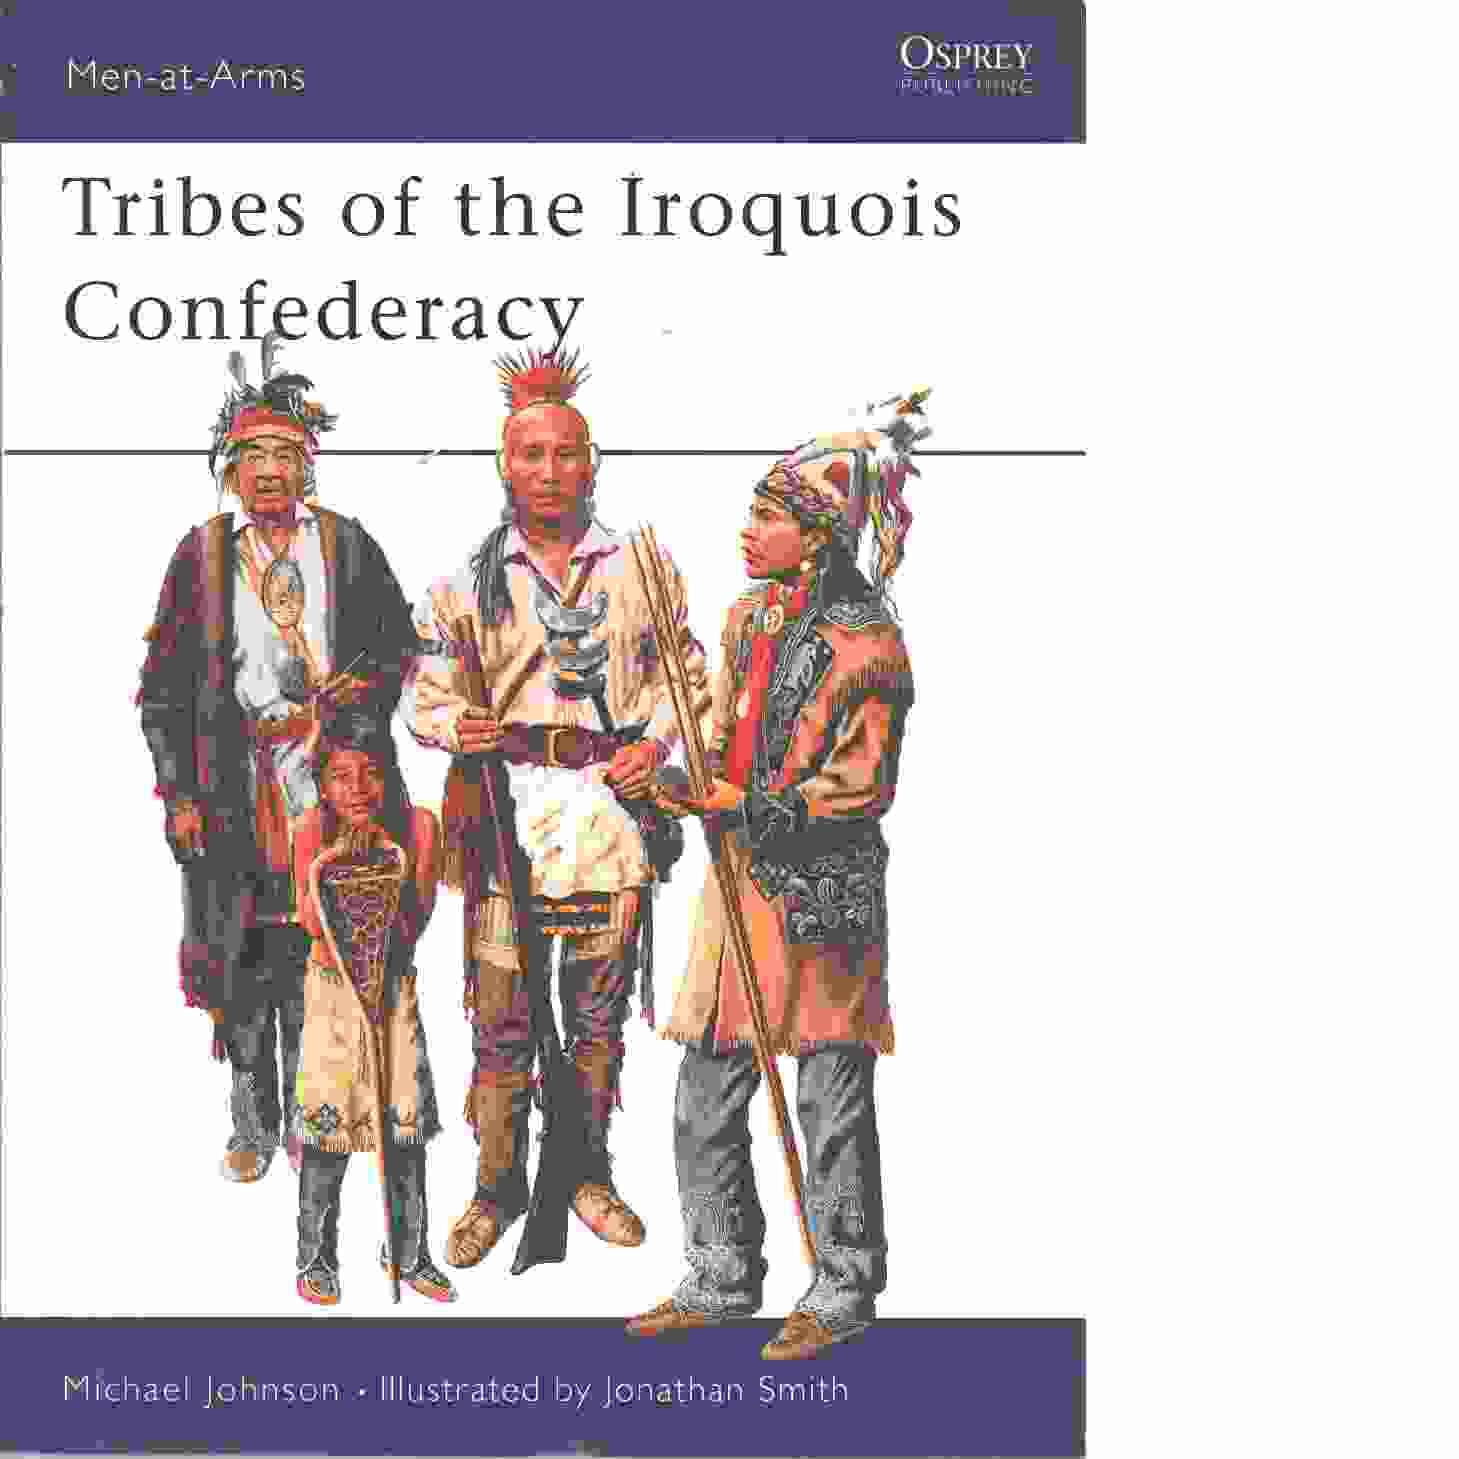 Tribes of the Iroquois Confederacy - Johnson, Michael  och Smith, Jonathan